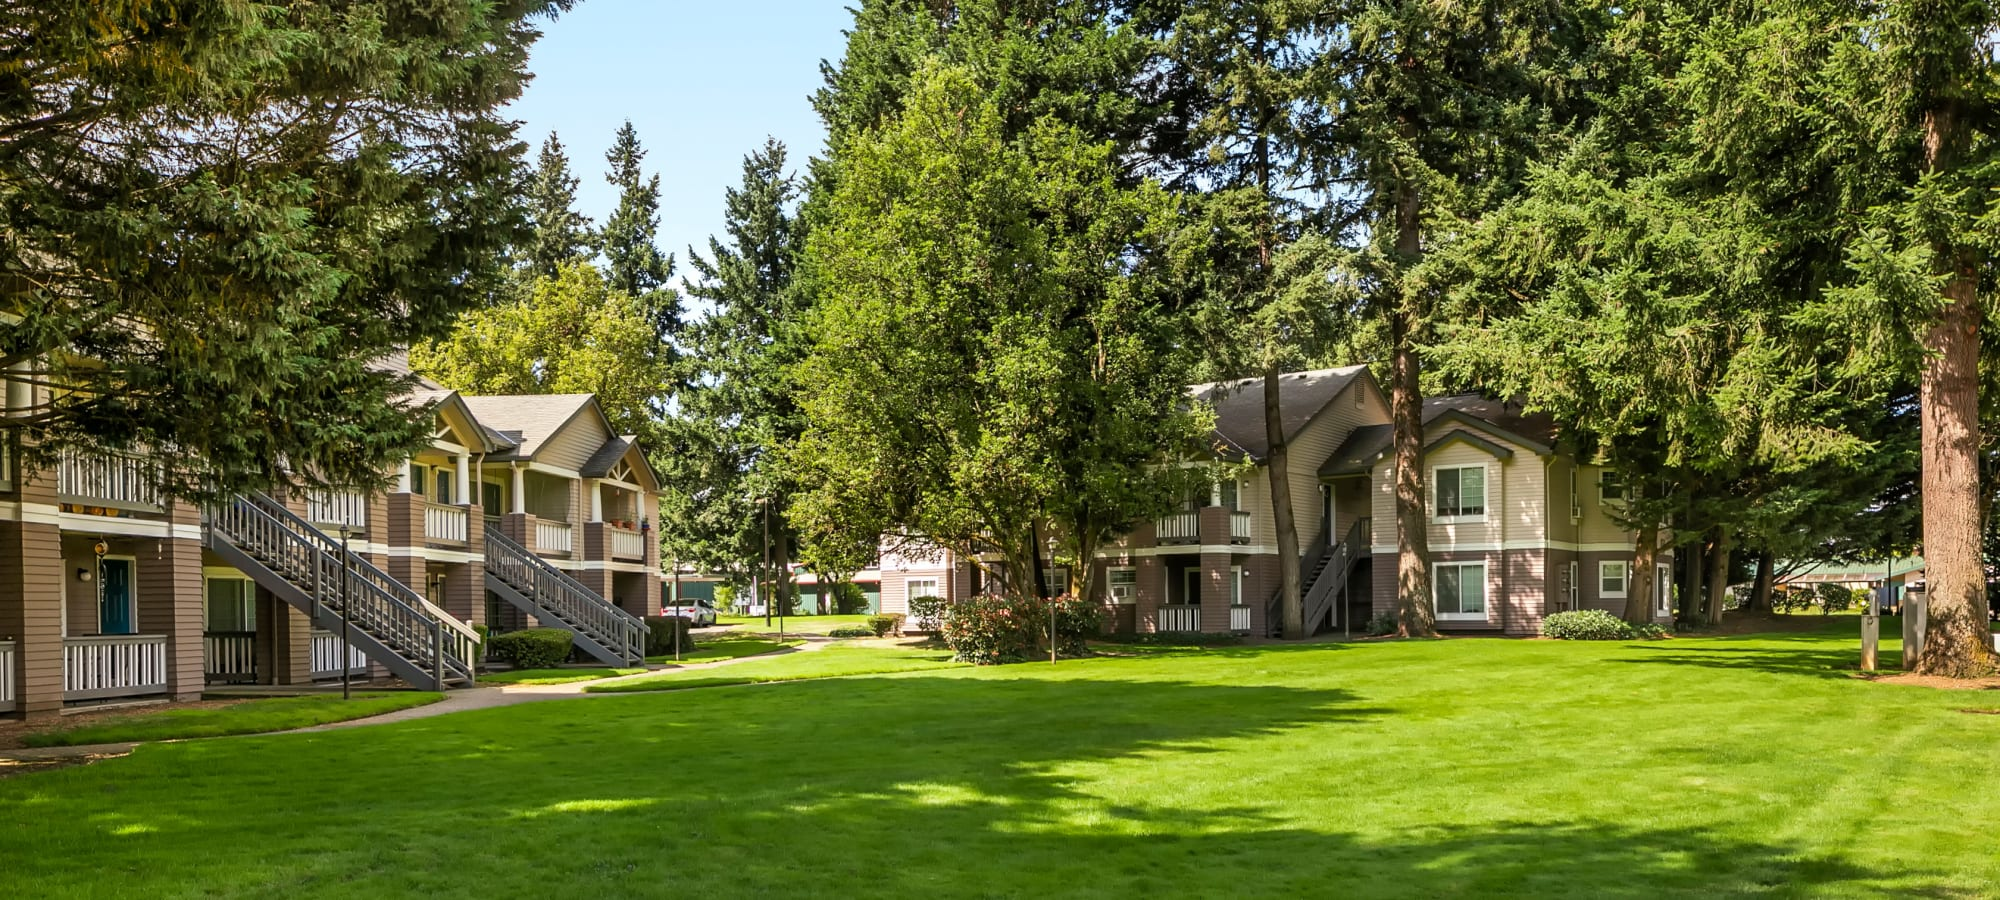 Apartments from Autumn Chase Apartments in Vancouver, Washington